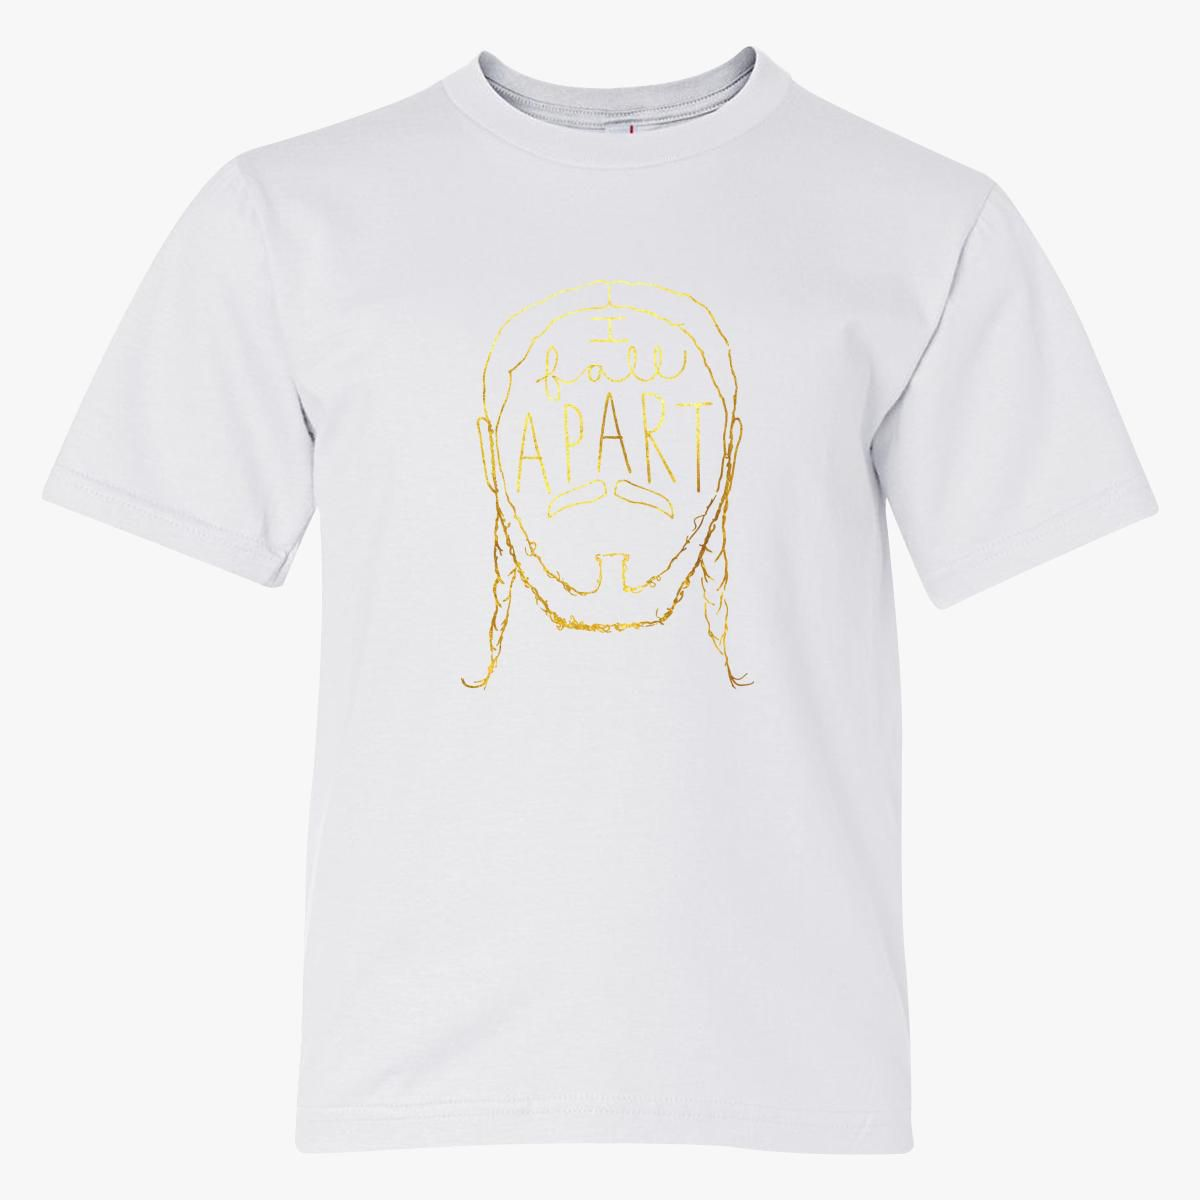 Post Malone I Fall Apart Guitar: Post Malone I Fall Apart Youth T-shirt